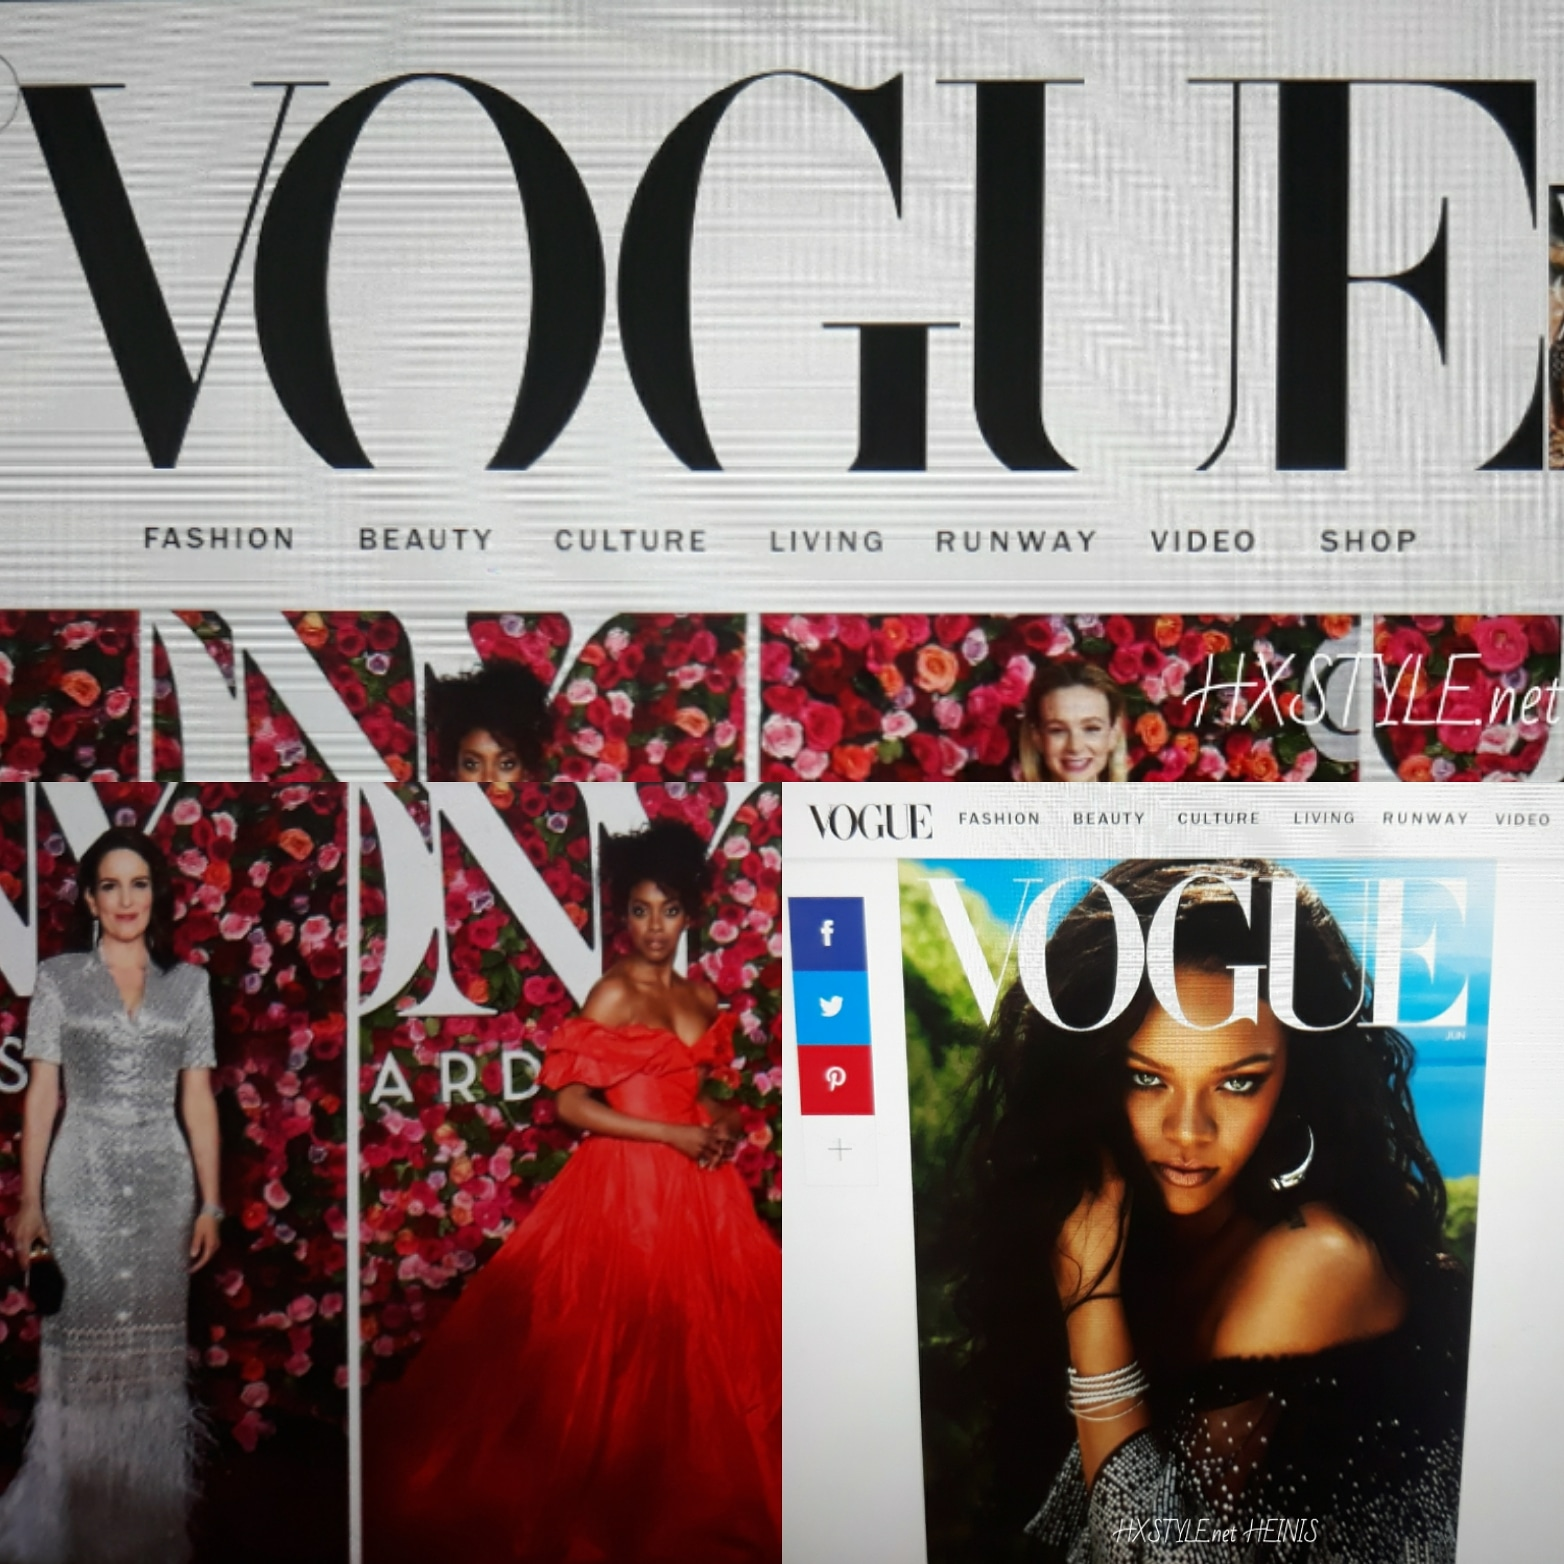 VOGUE&NEWS&TRENDS. TONY AWARDS, BEST FASHION, DRESSED, BEAUTY&VIDEOS…13.6.2018. HXSTYLE.net HEINIS